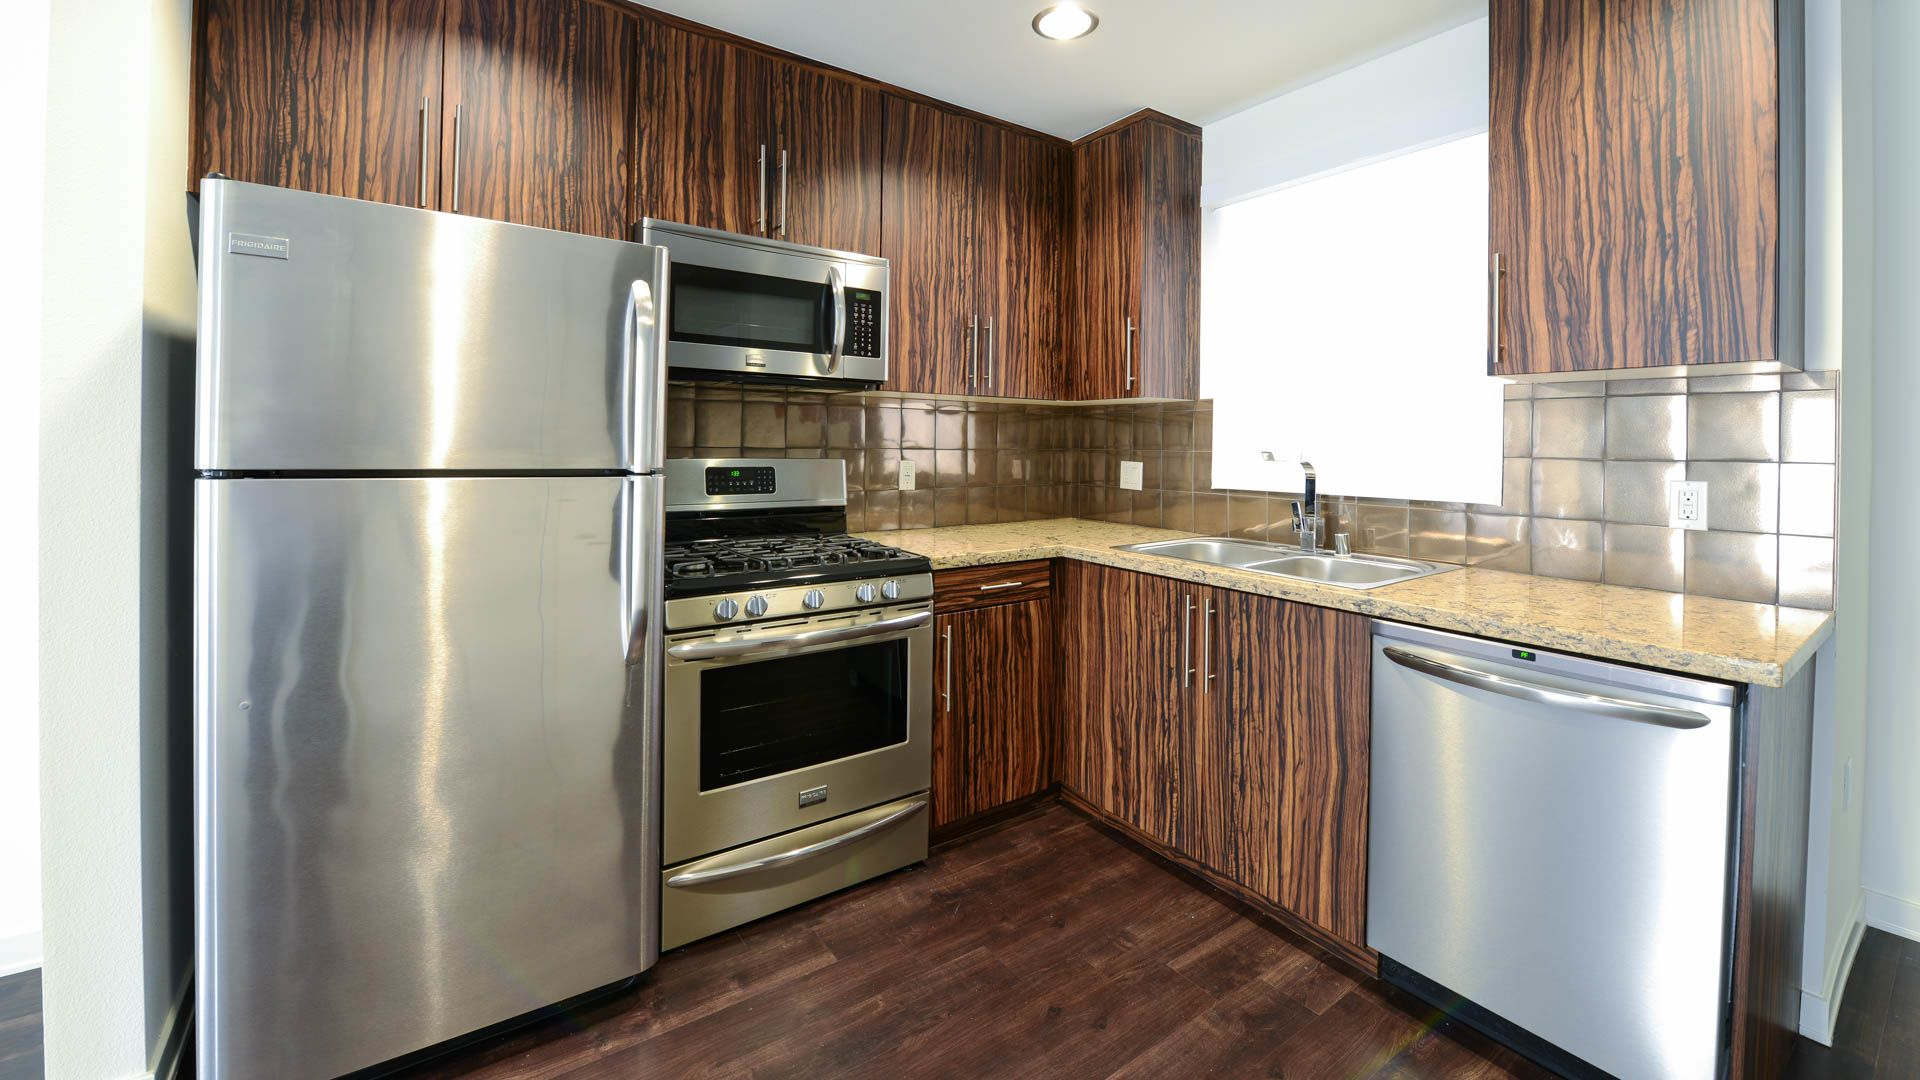 C on Pico Apartments - Kitchen